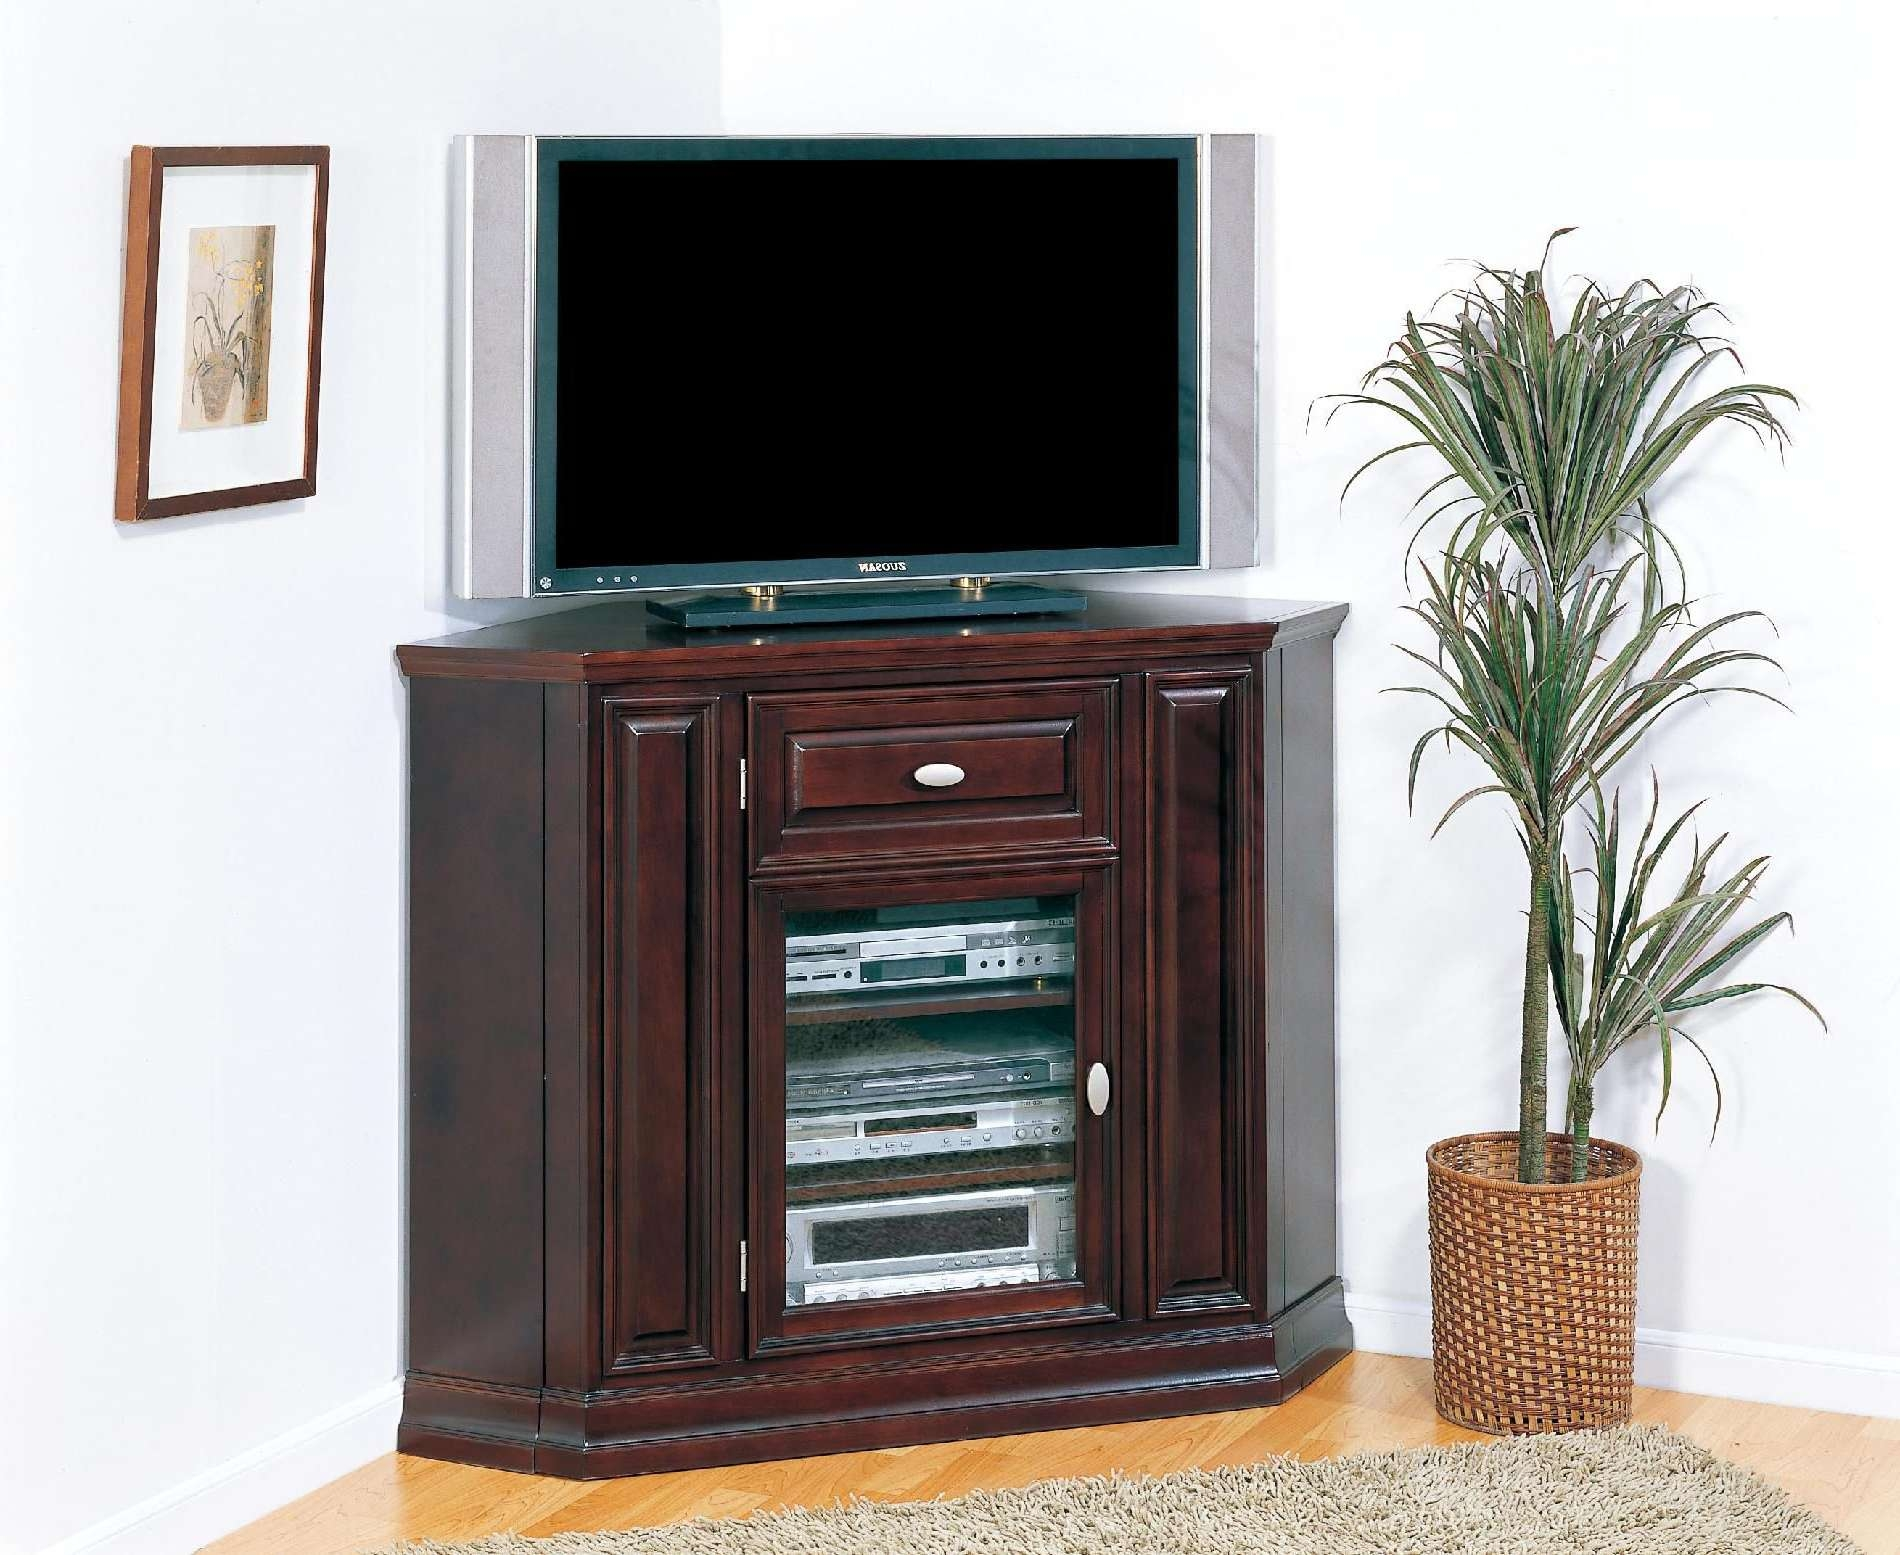 Tall Corner Tv Cabinet With Glass And Wood Doors Plus Drawer Of Inside Black Corner Tv Cabinets With Glass Doors (View 15 of 20)